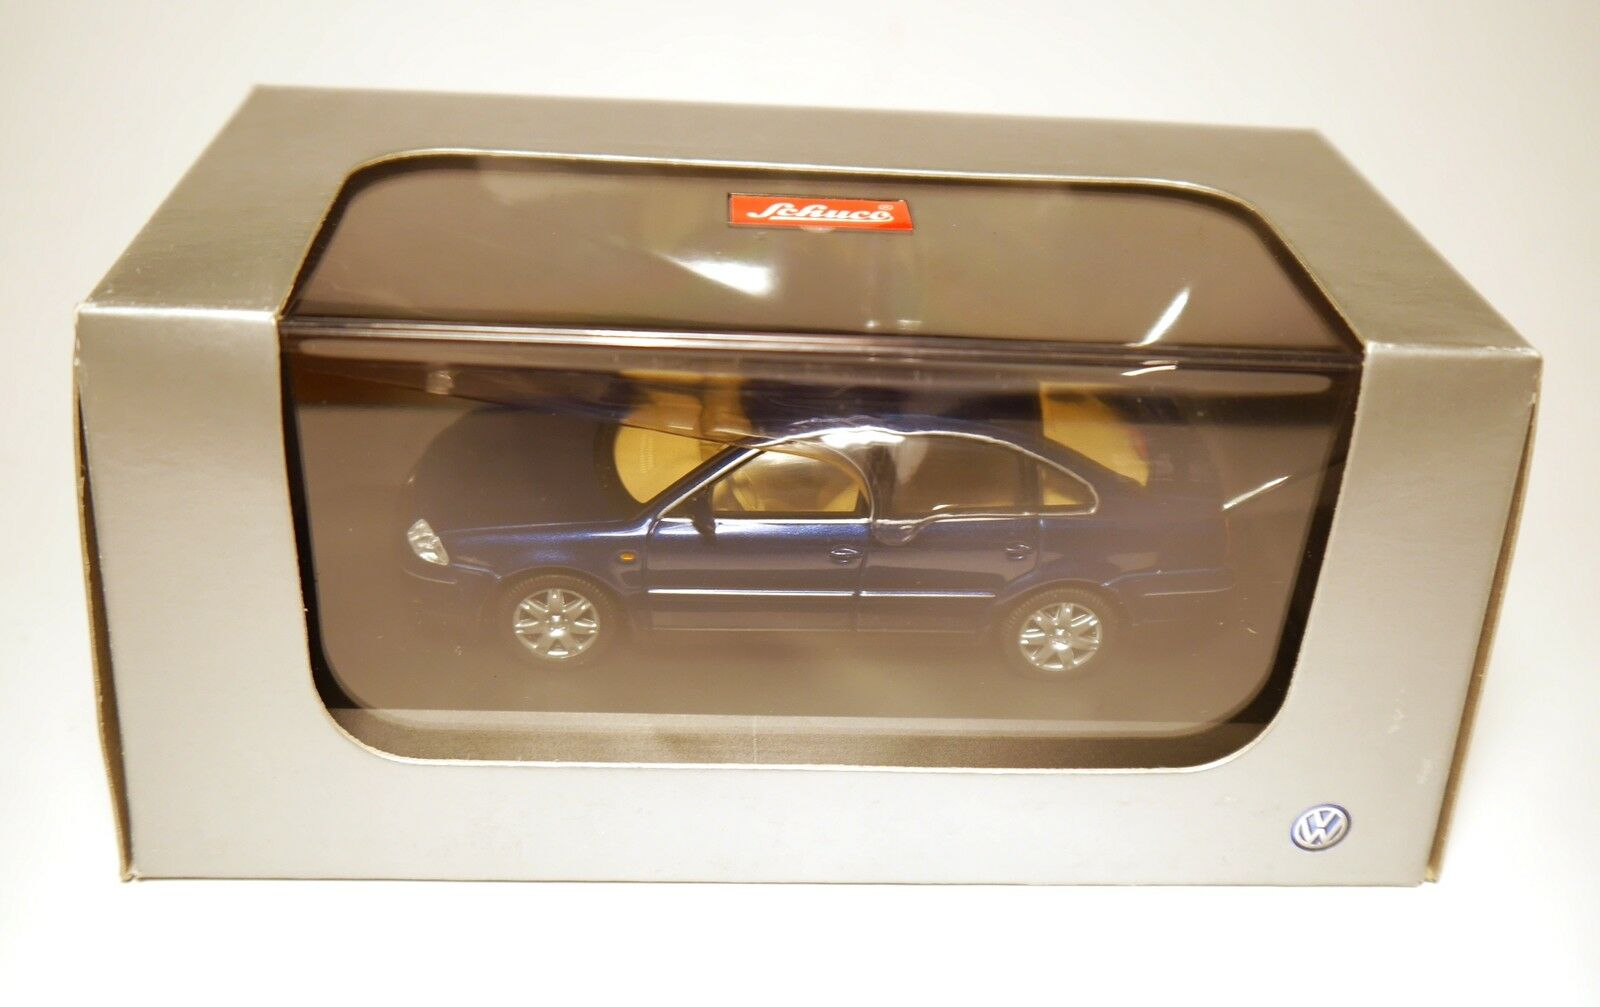 VW PASSAT B5 GP Type 3BG 2000-2005 Sedan Saloon bluee Schuco 1 43 Boxed